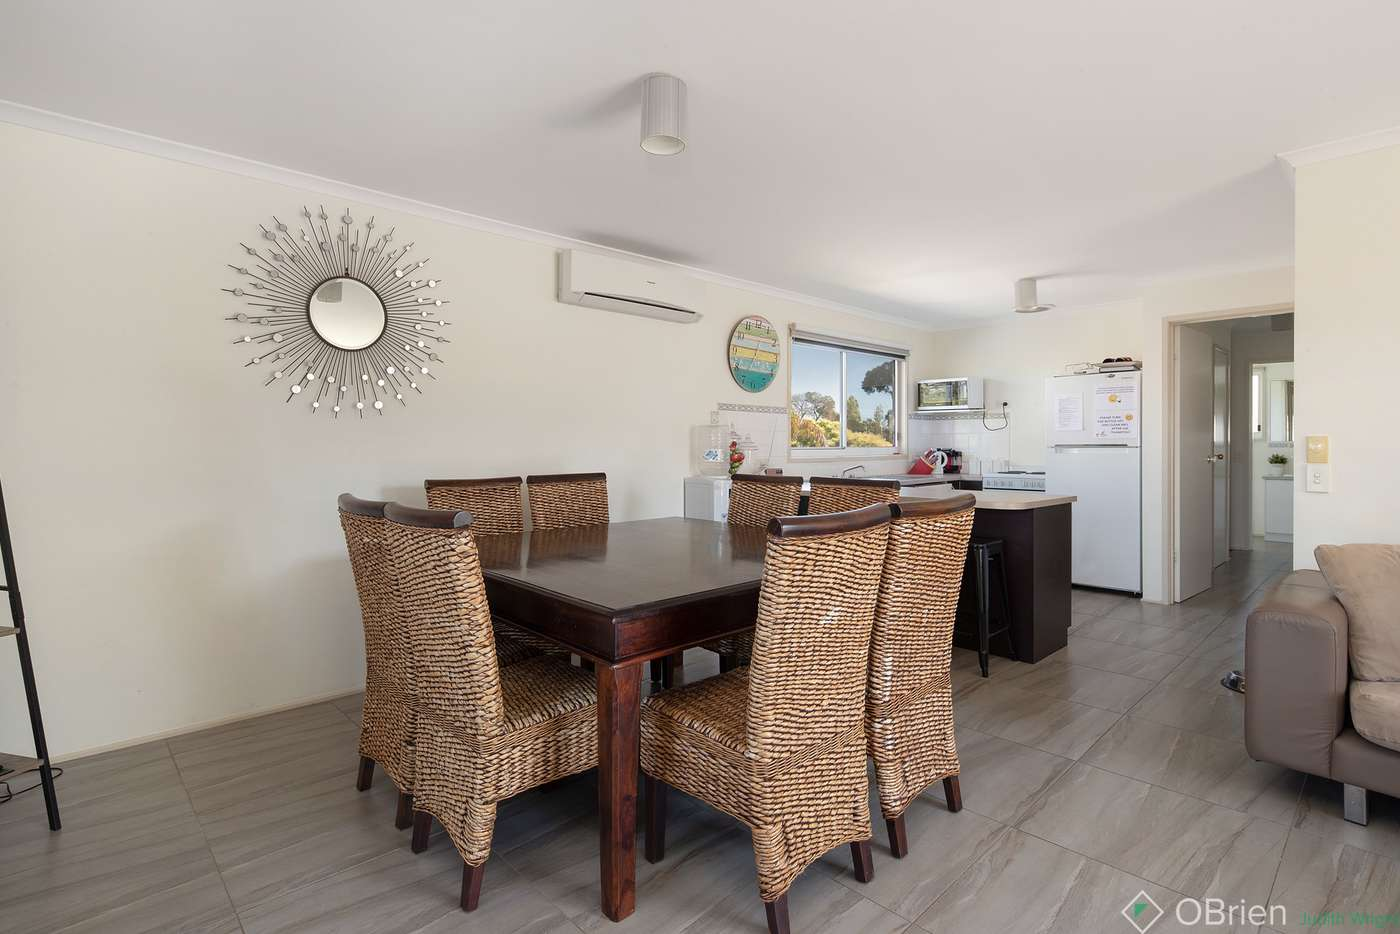 Seventh view of Homely house listing, 314 Settlement Road, Cowes VIC 3922